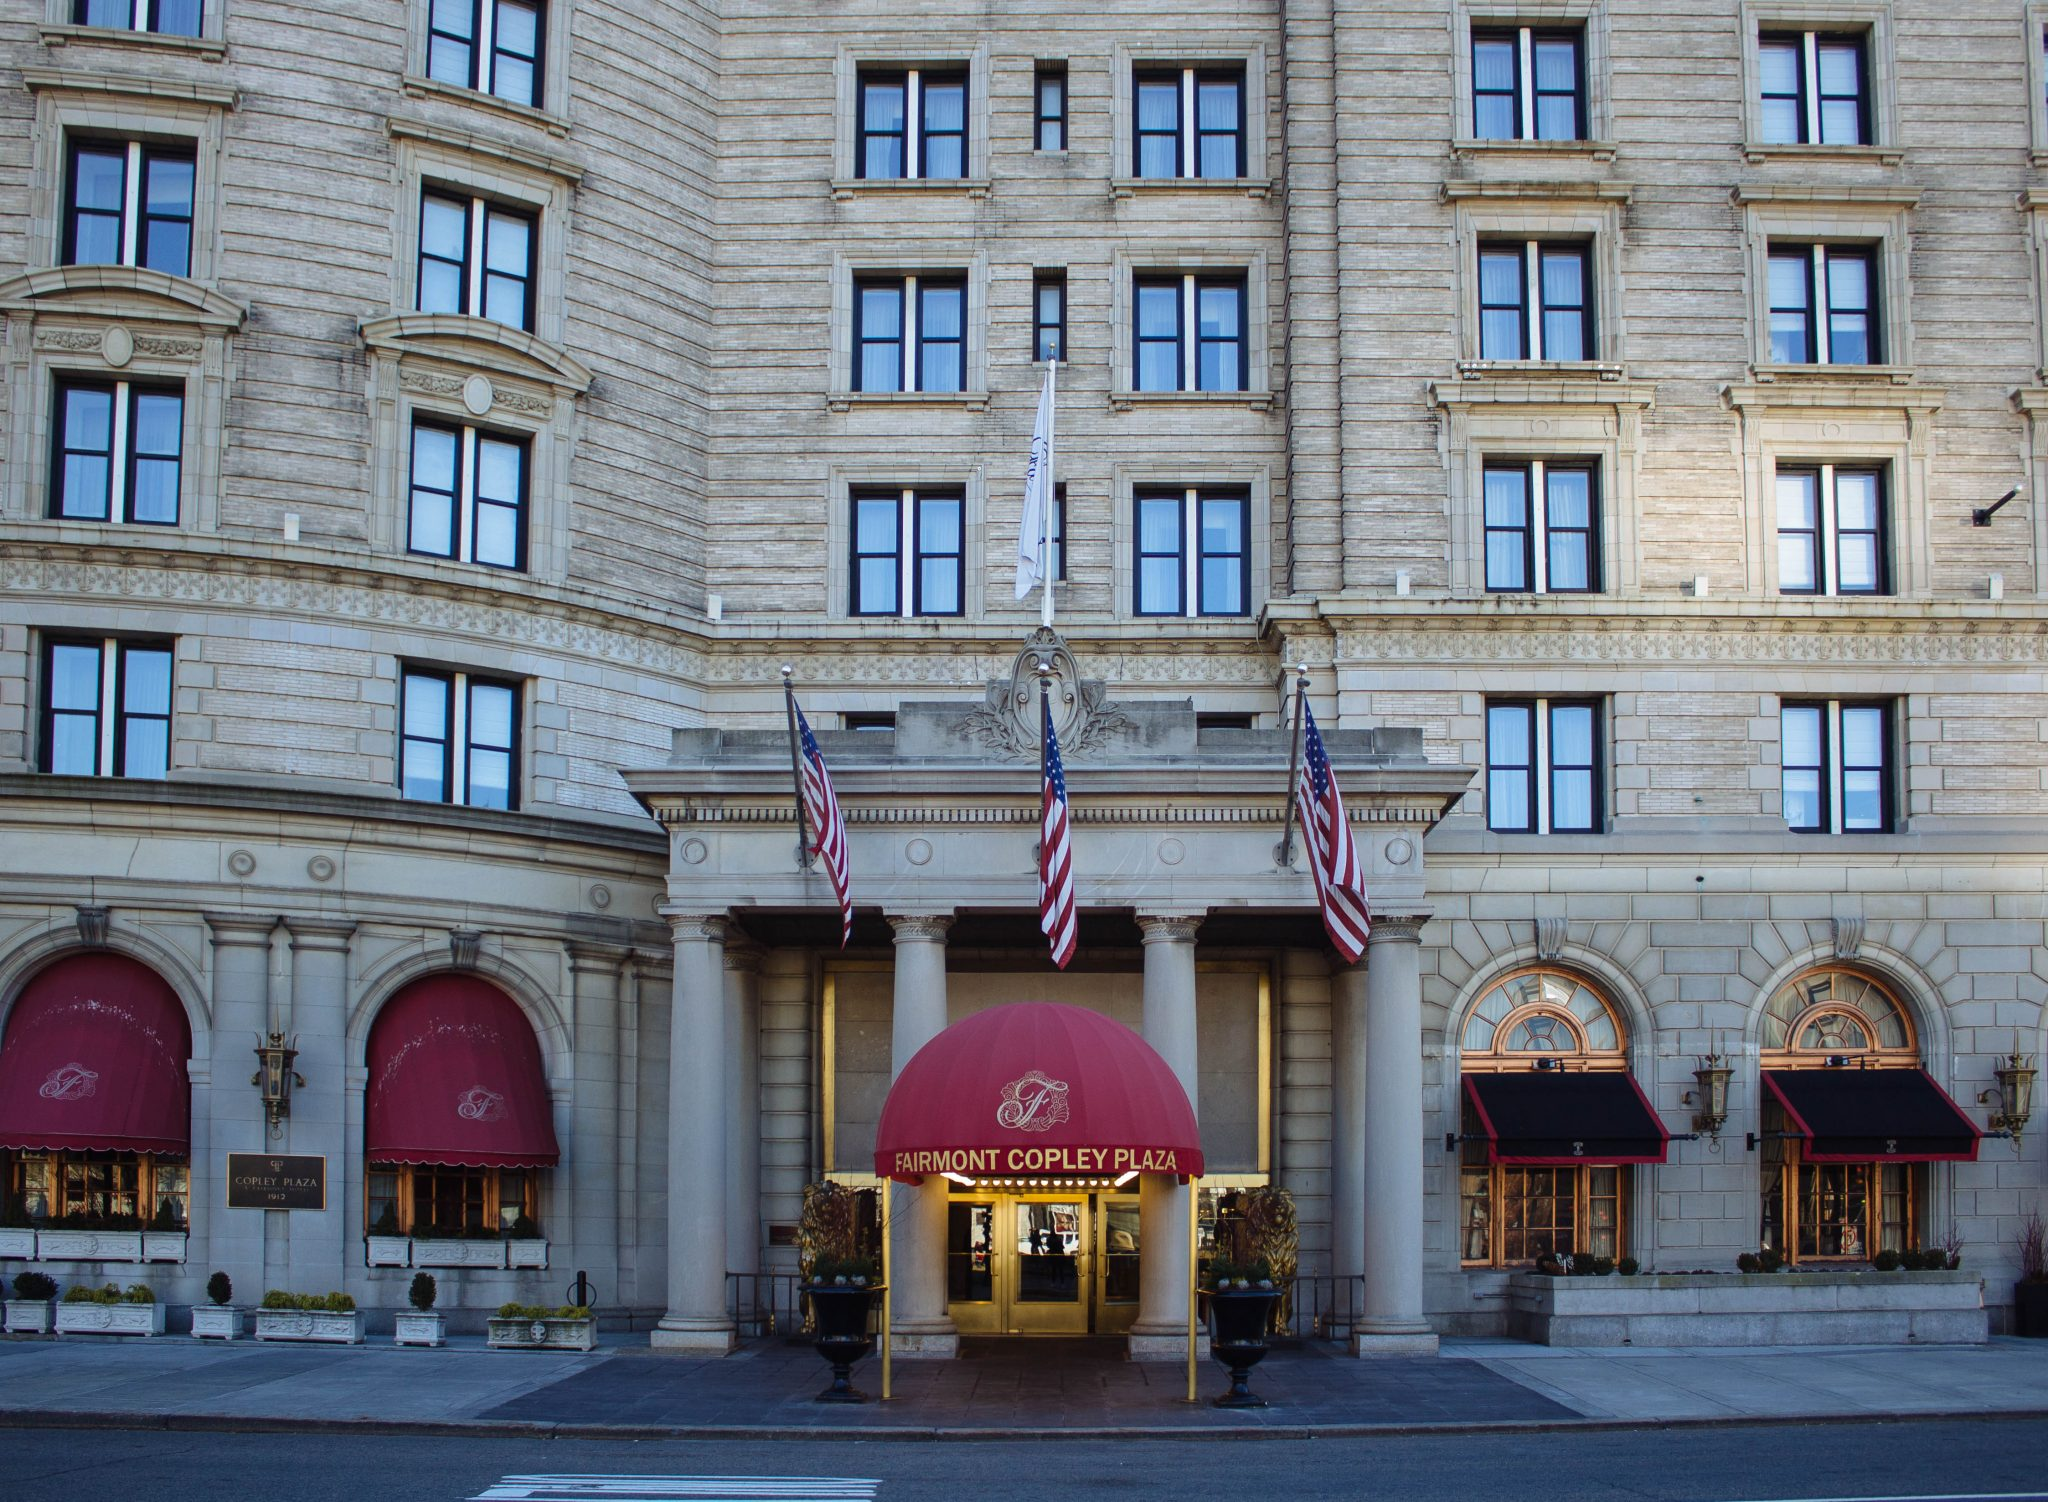 Fairmont copley plaza a boston hotel the stopover by for Historic hotels in boston